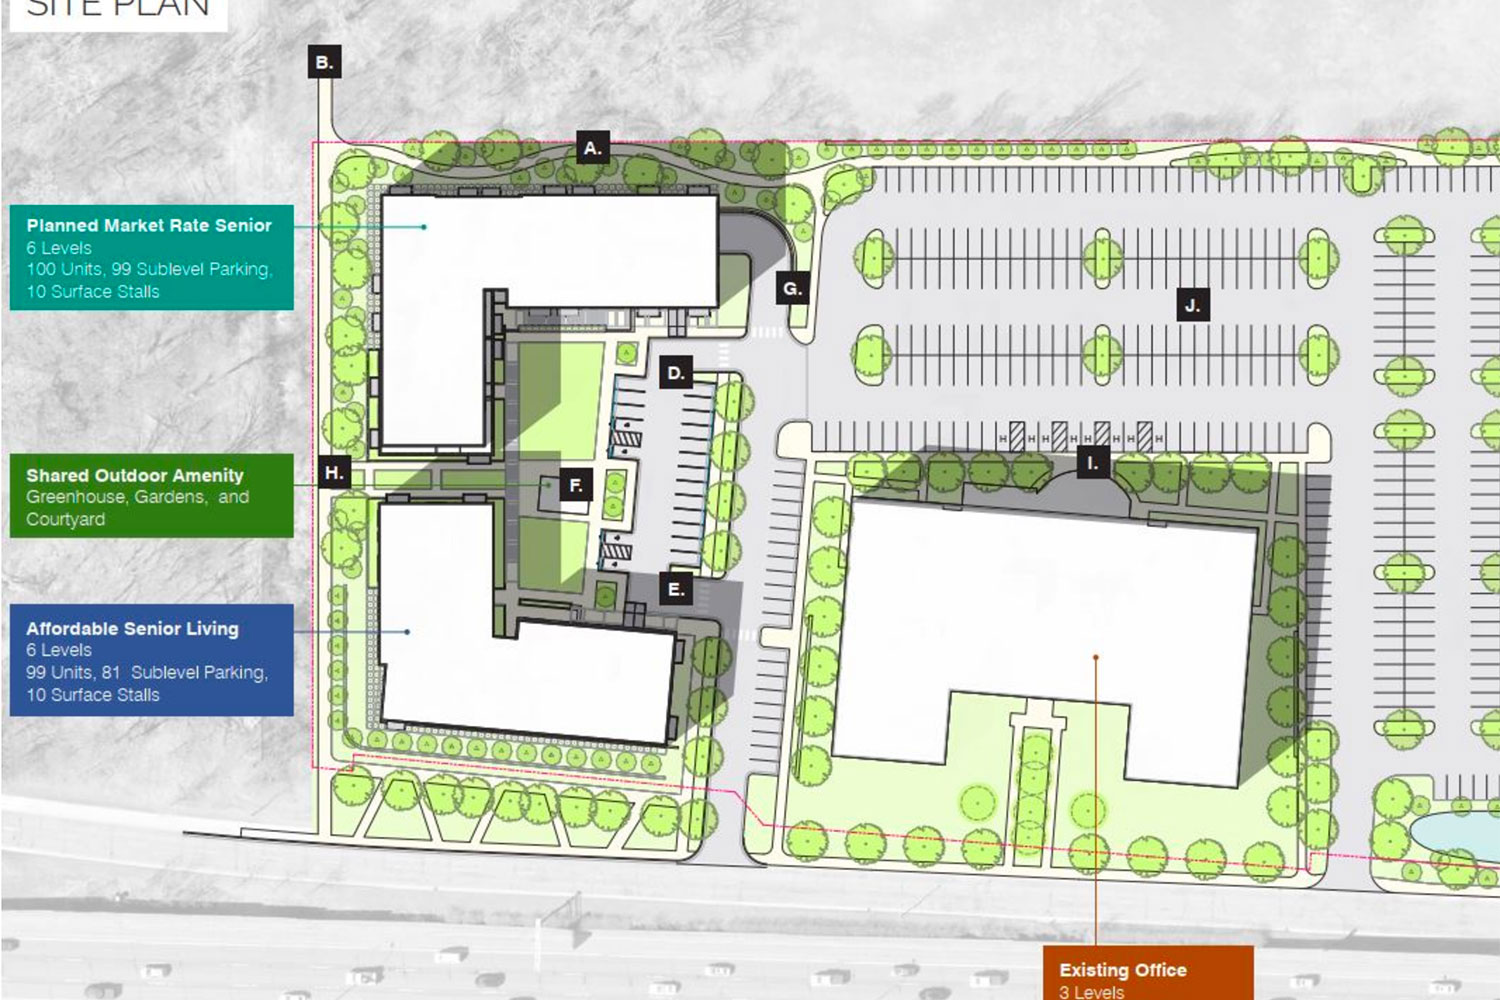 Senior housing developers partner with Minneapolis' Bryn Mawr neighborhood